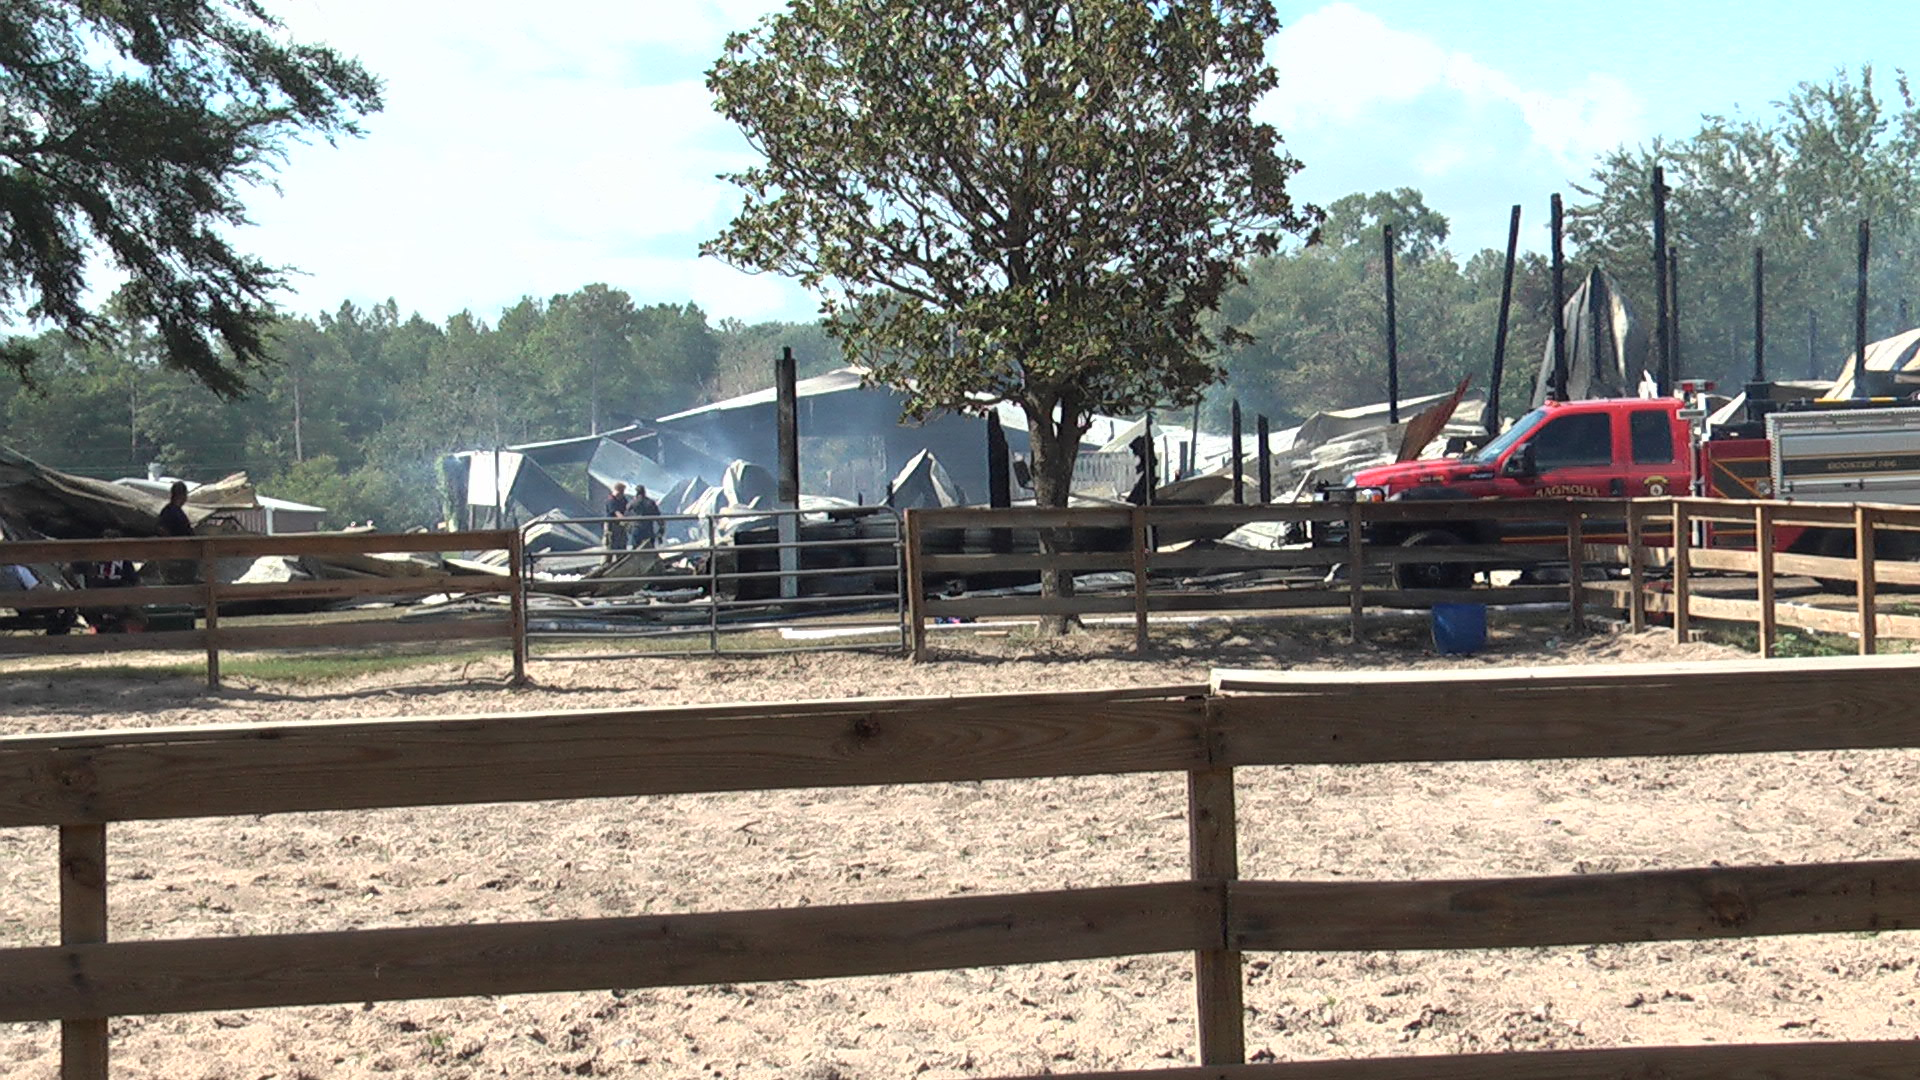 FIRE IN MAGNOLIA LEAVES 14 HORSES DEAD